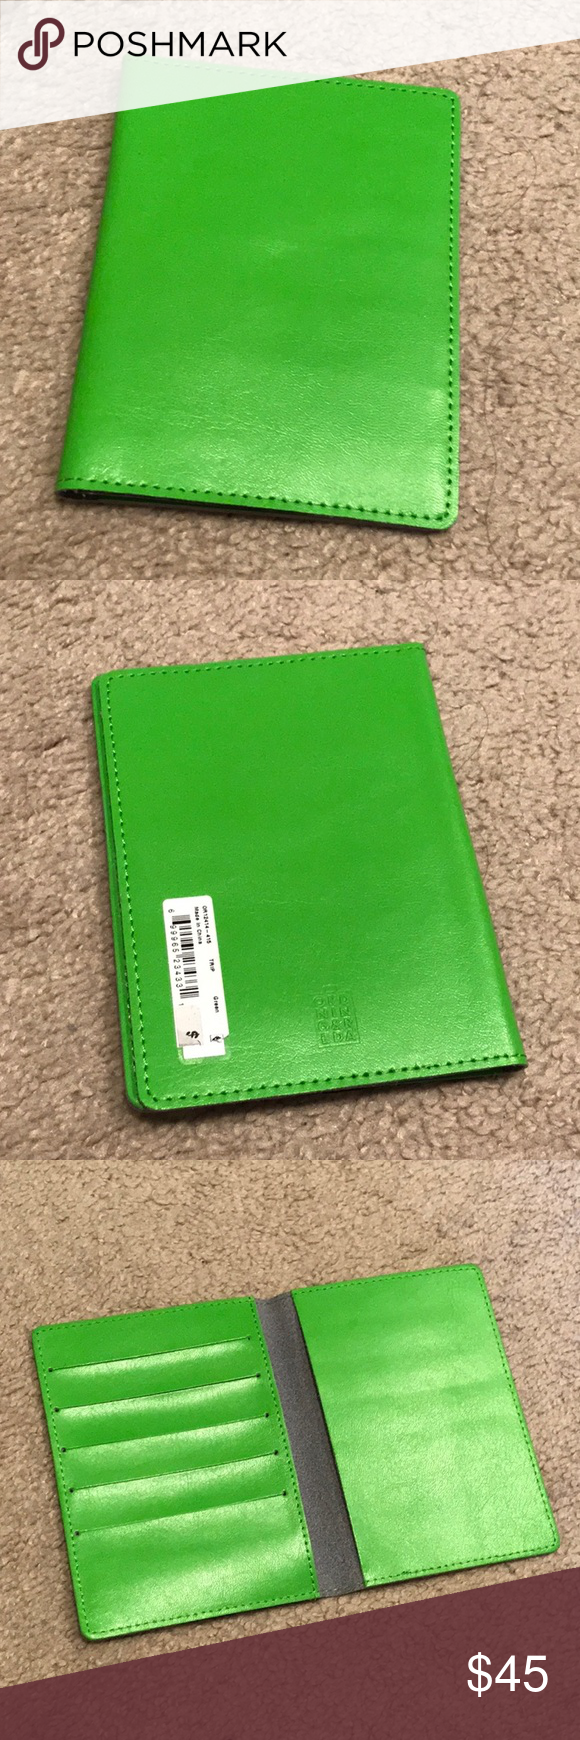 Green PASSPORT Holder. NWT (With images) Green, Clothes